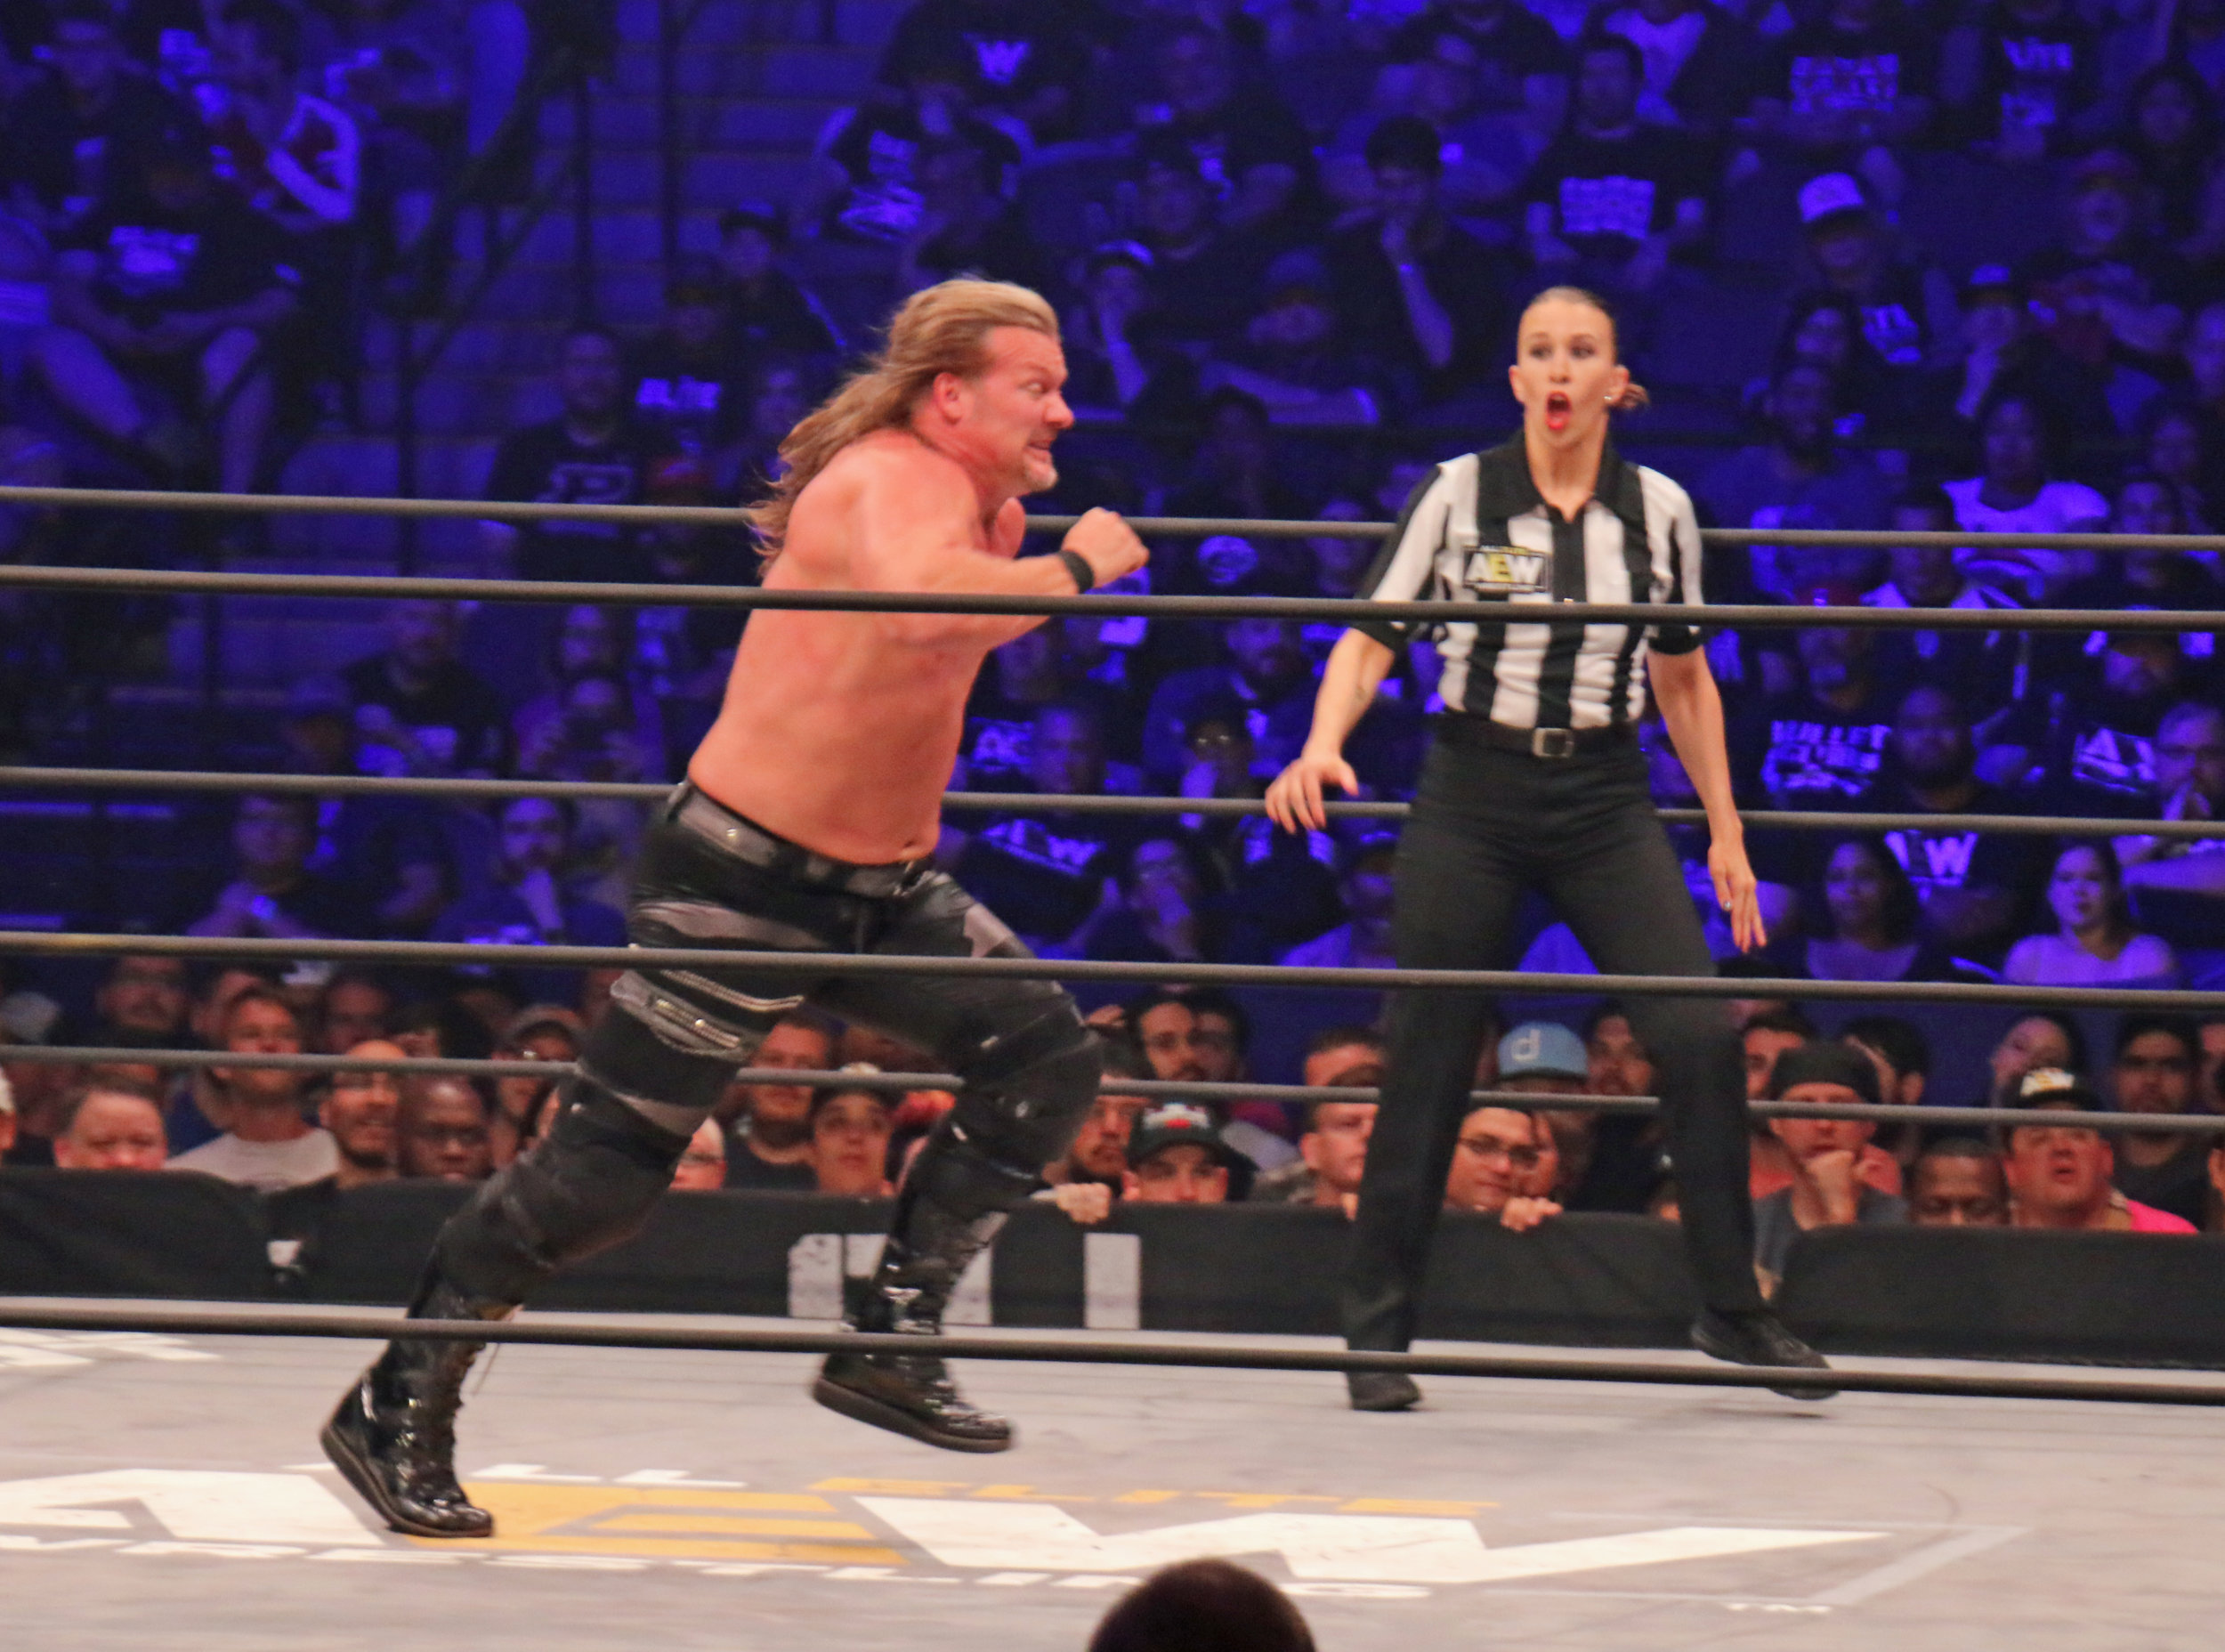 Chris Jericho charges toward Hangman Page (not pictured) as referee Aubrey Edwards reacts.